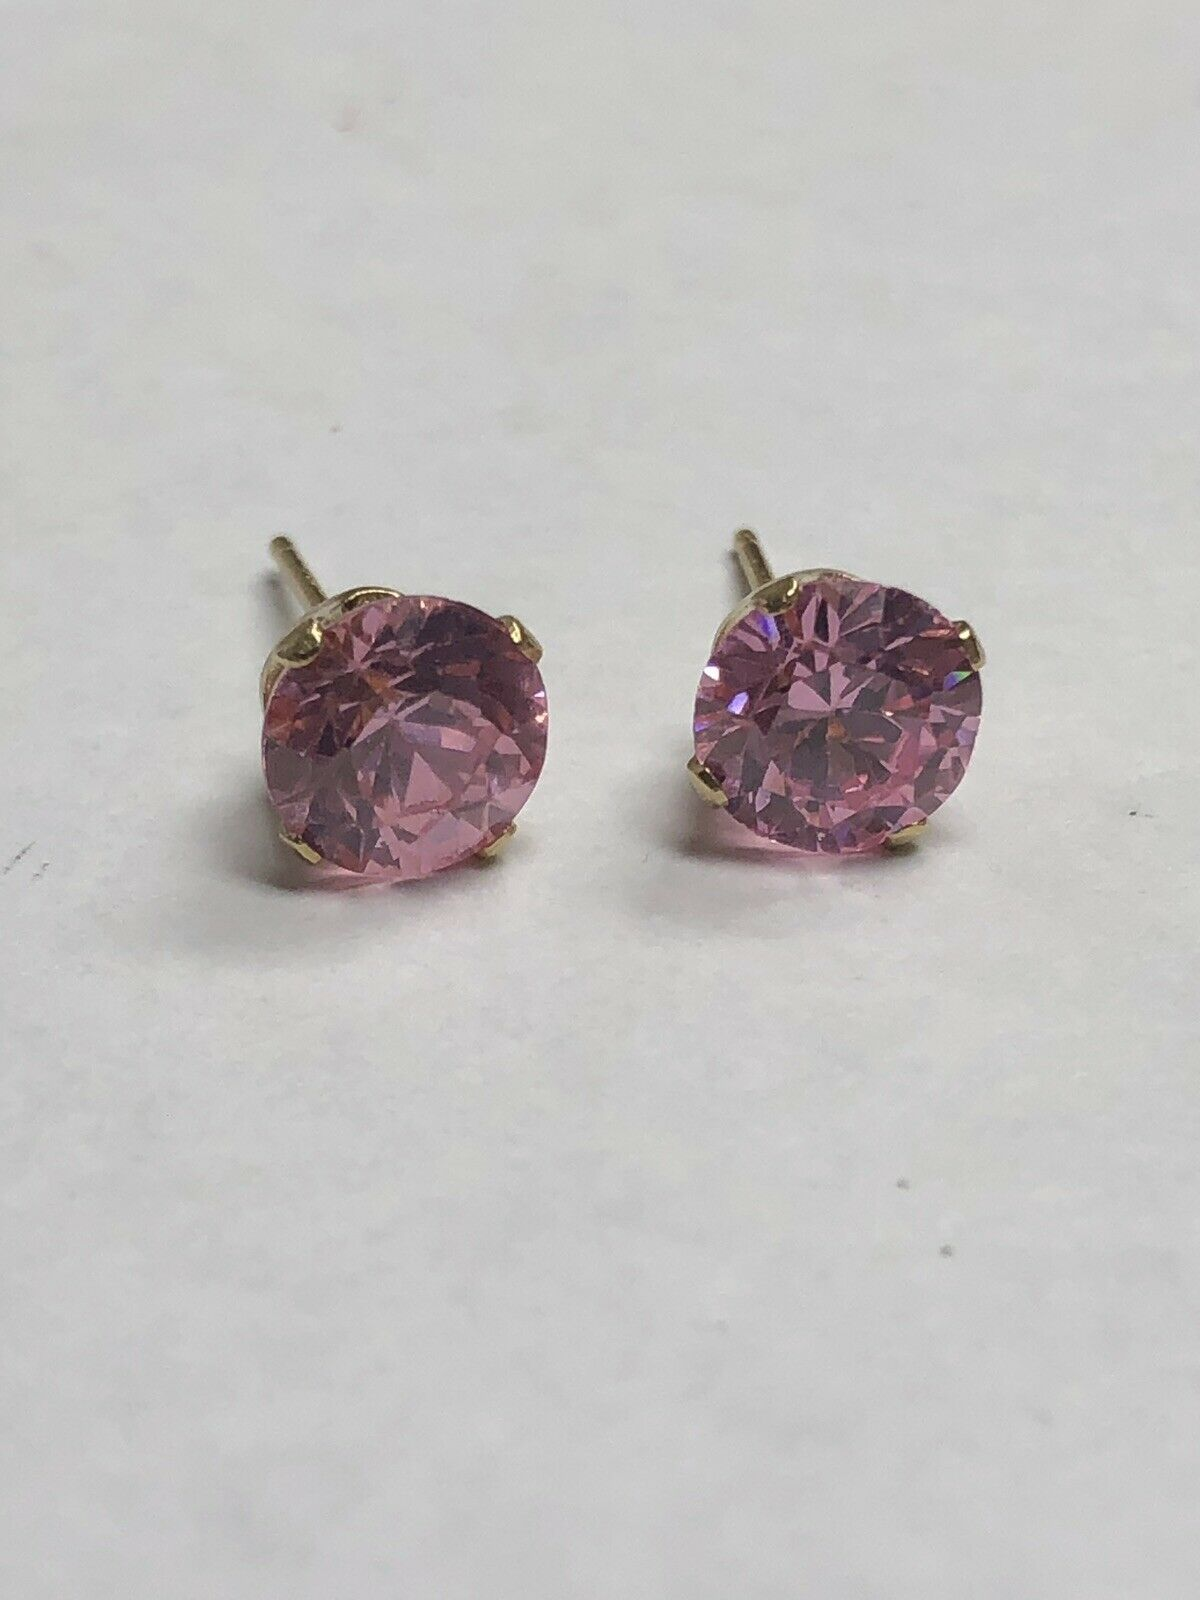 14k yellow gold pink ice earrings - 6.5 mm  - 1.3 grams